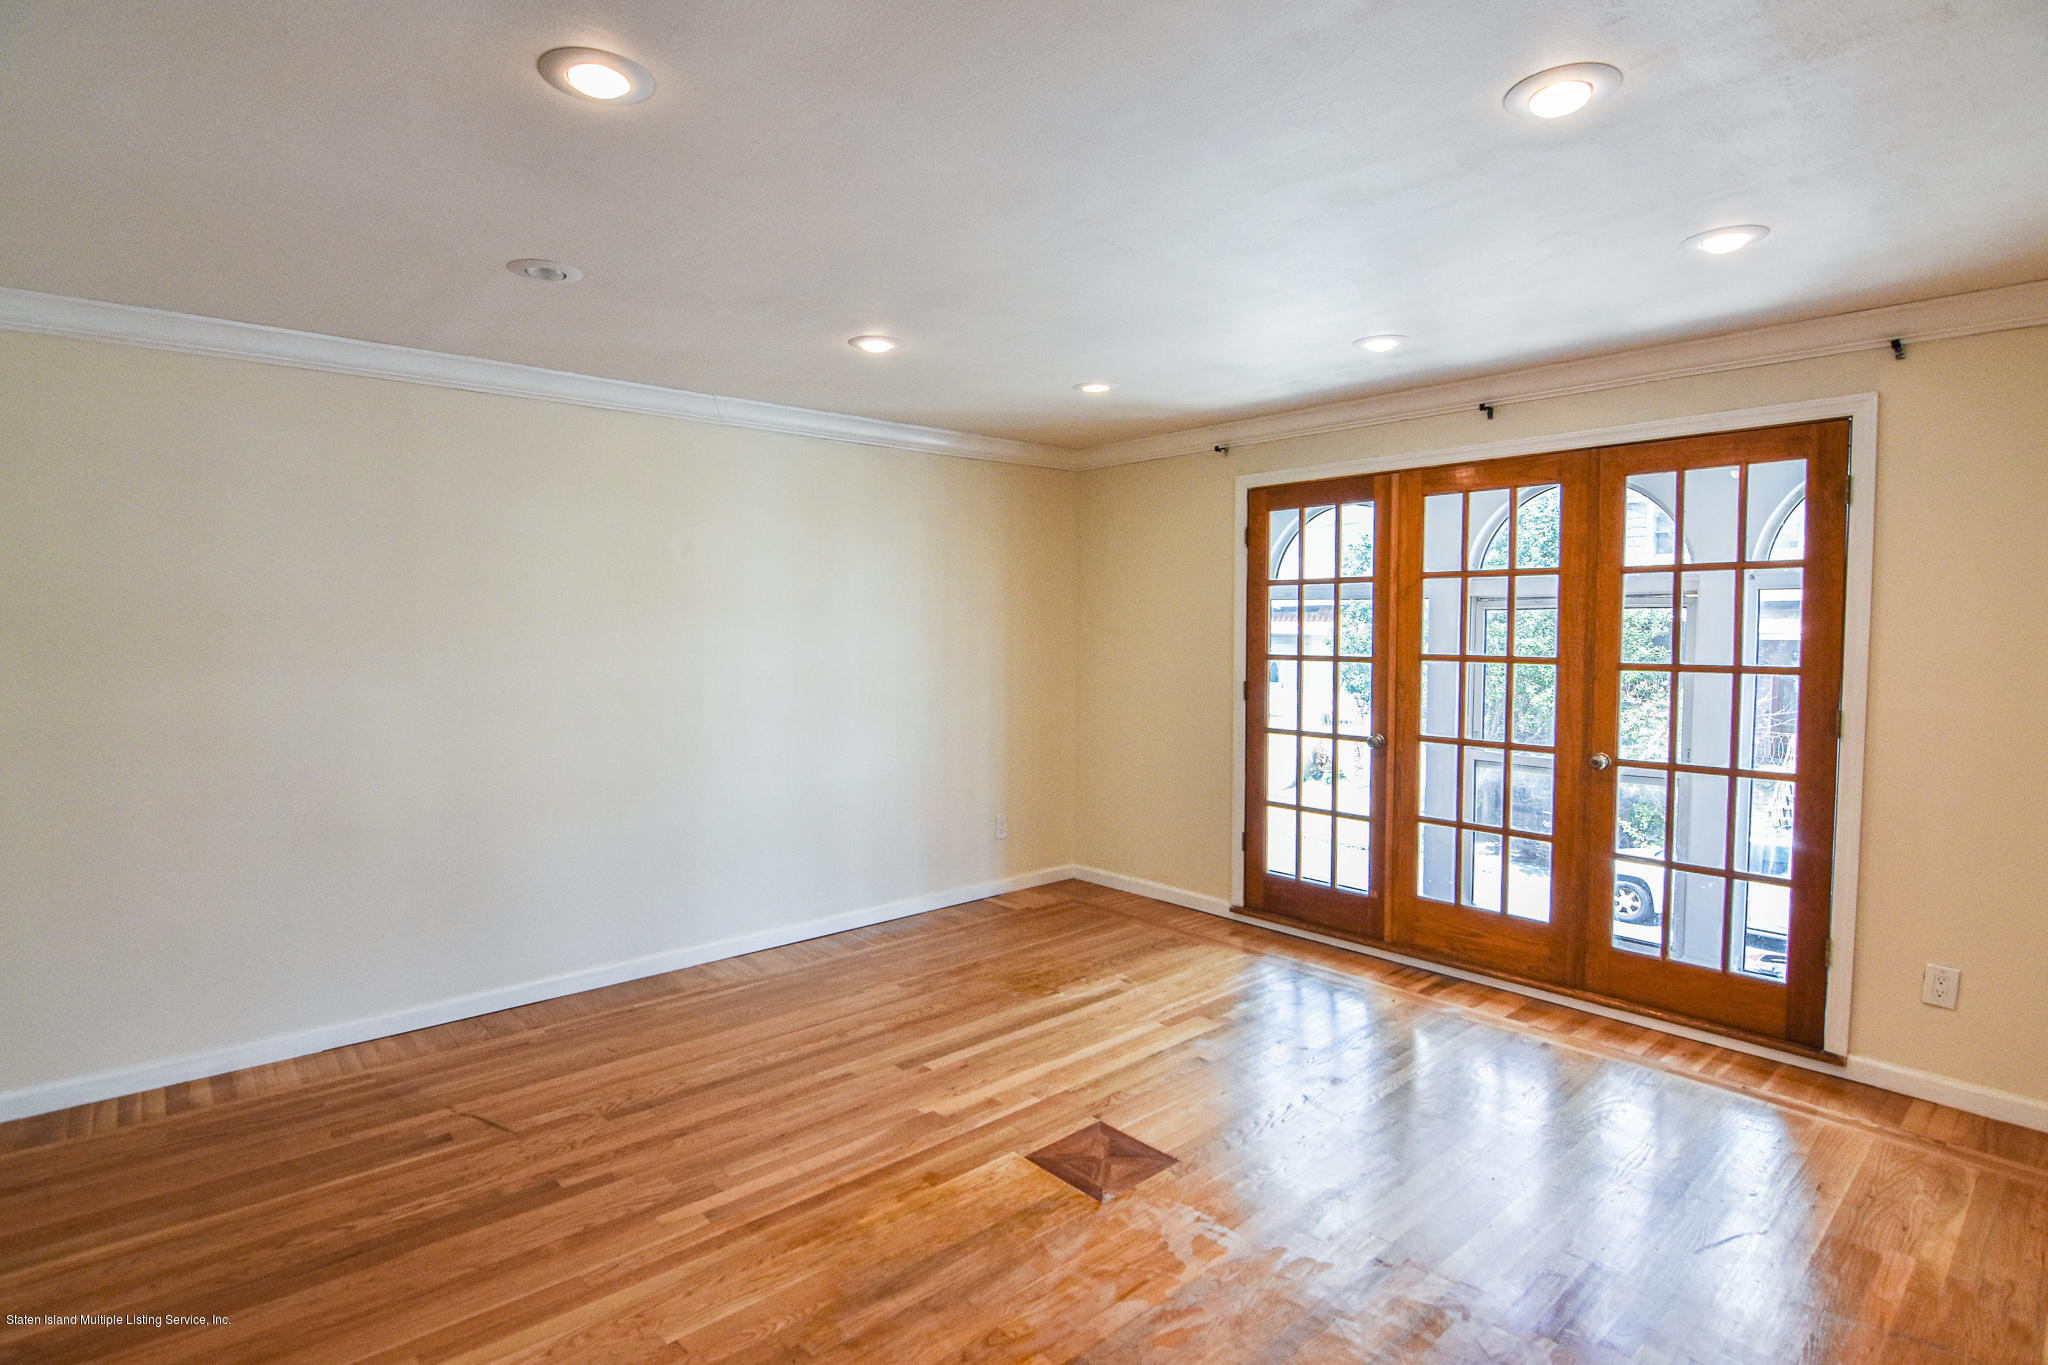 Single Family - Semi-Attached 12 Ebey Lane  Staten Island, NY 10312, MLS-1131132-9